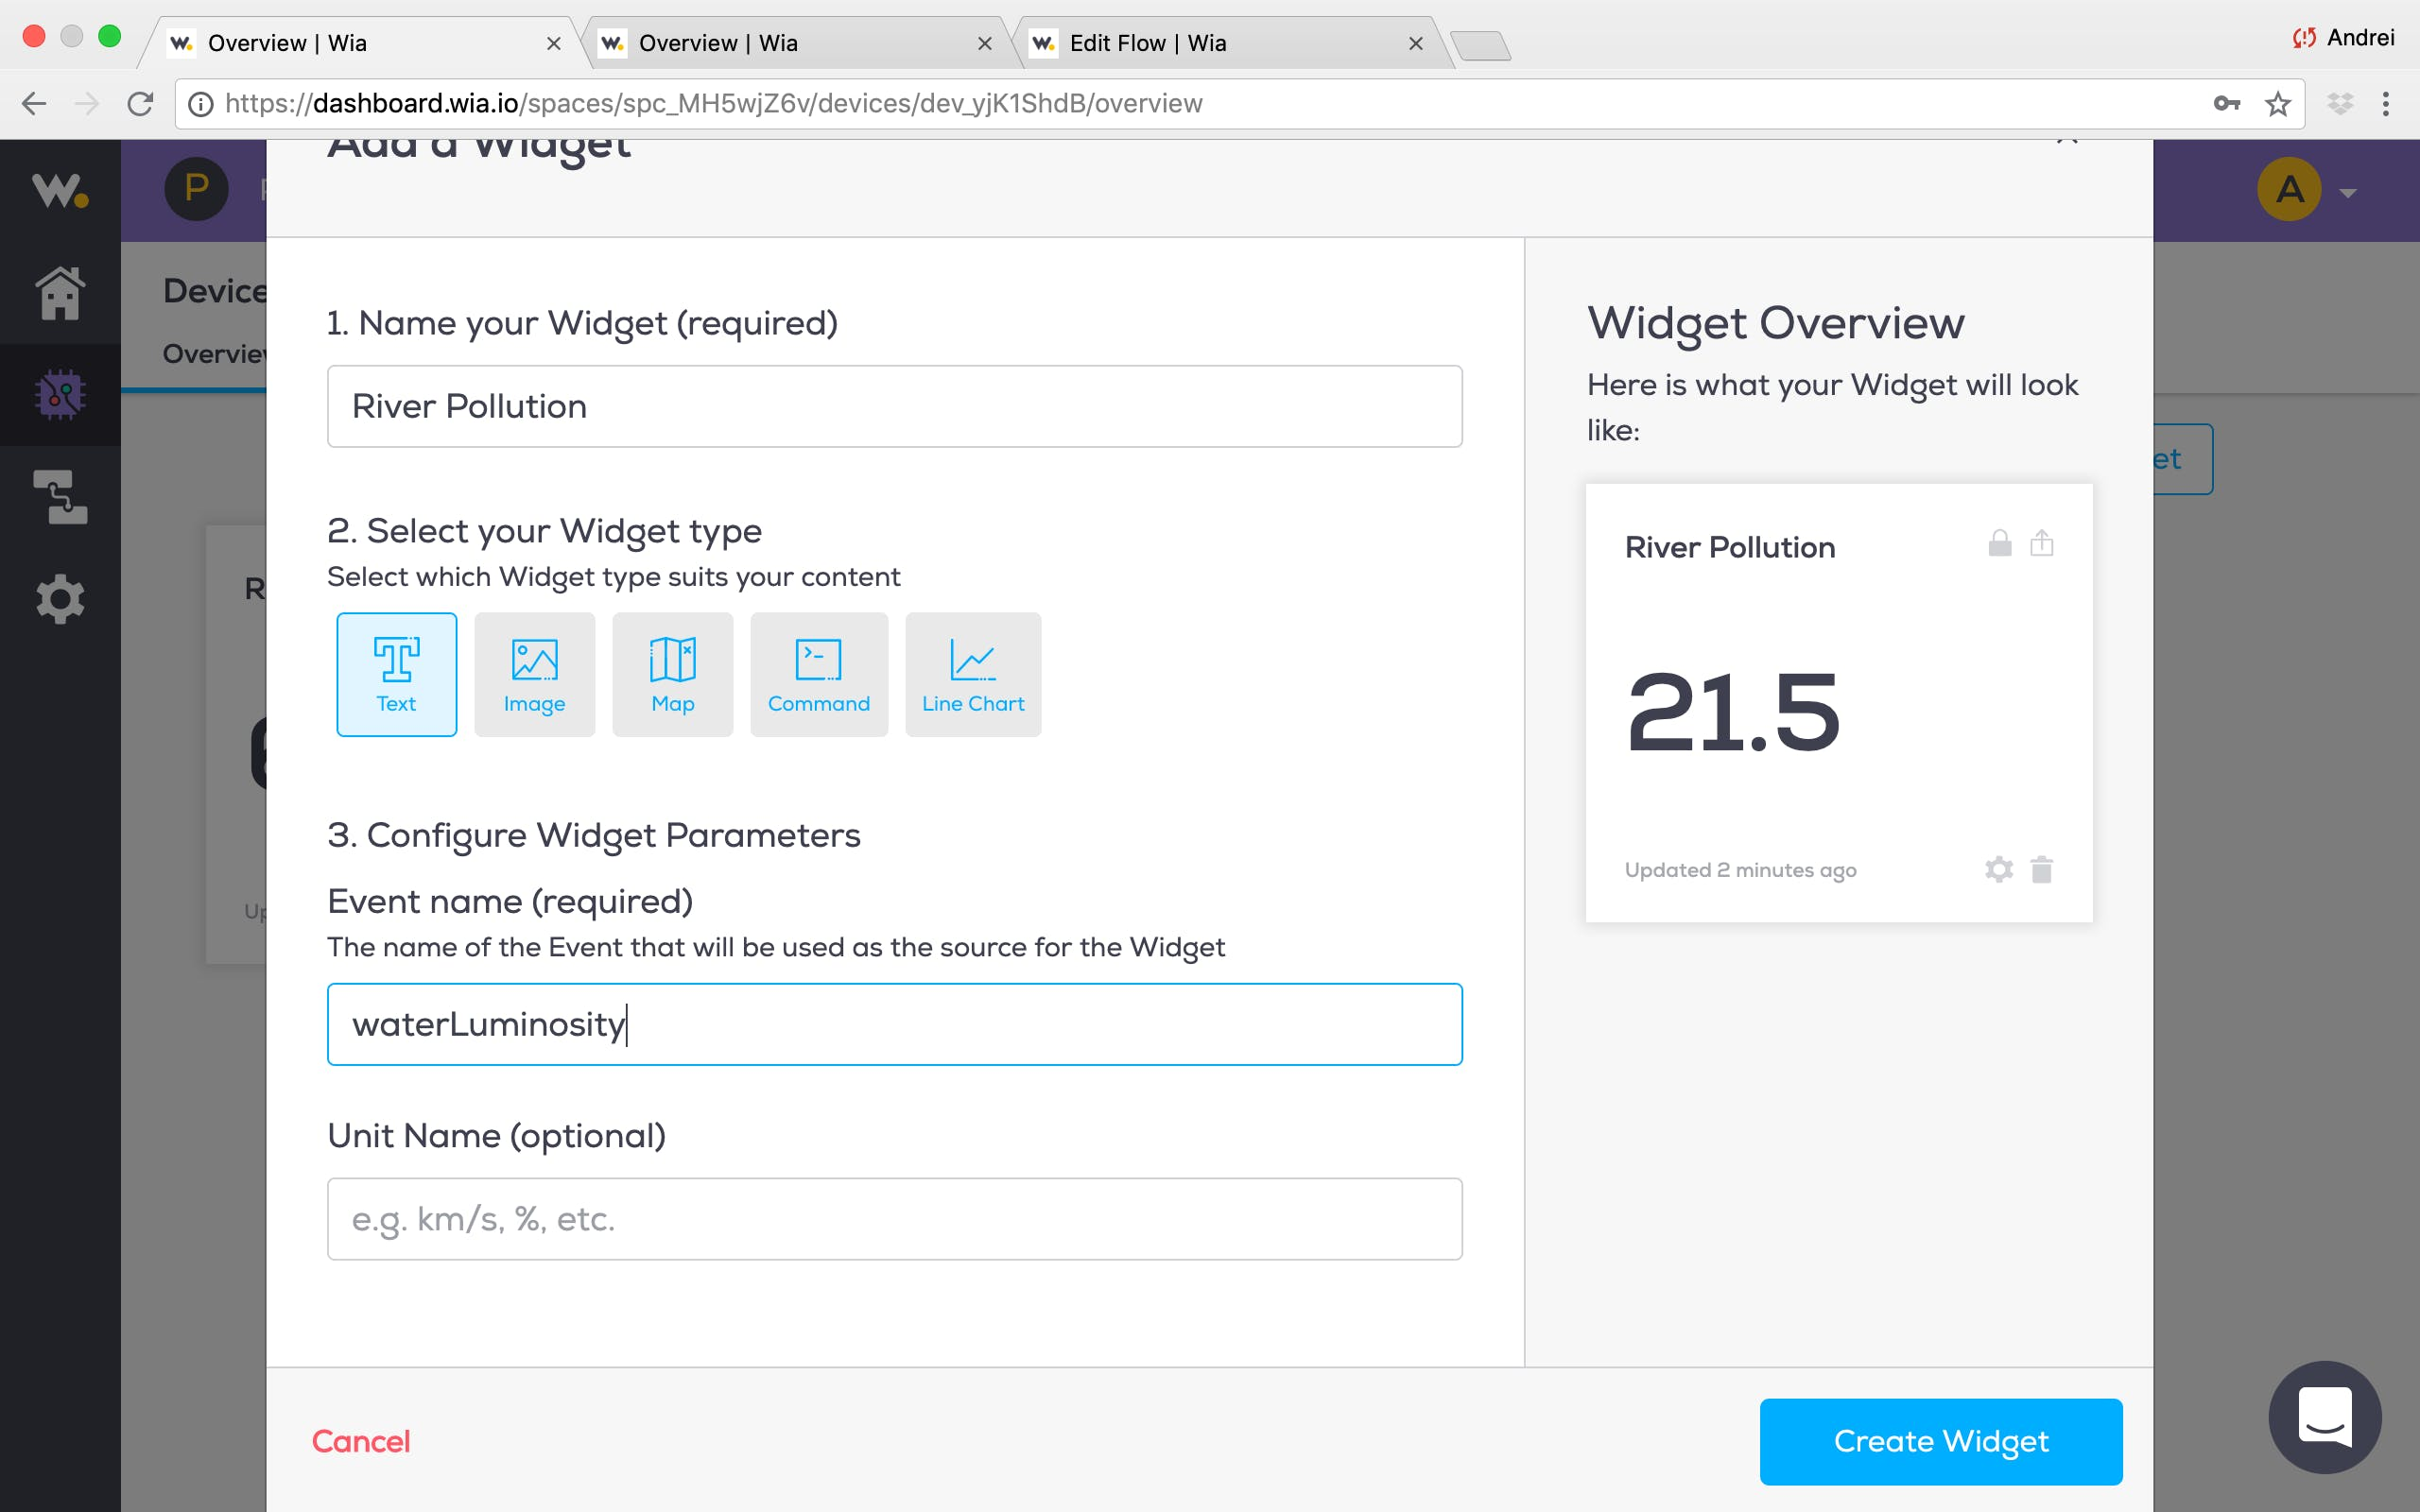 """Press the """"New Widget"""" button again and configure another widget as described in the image above"""